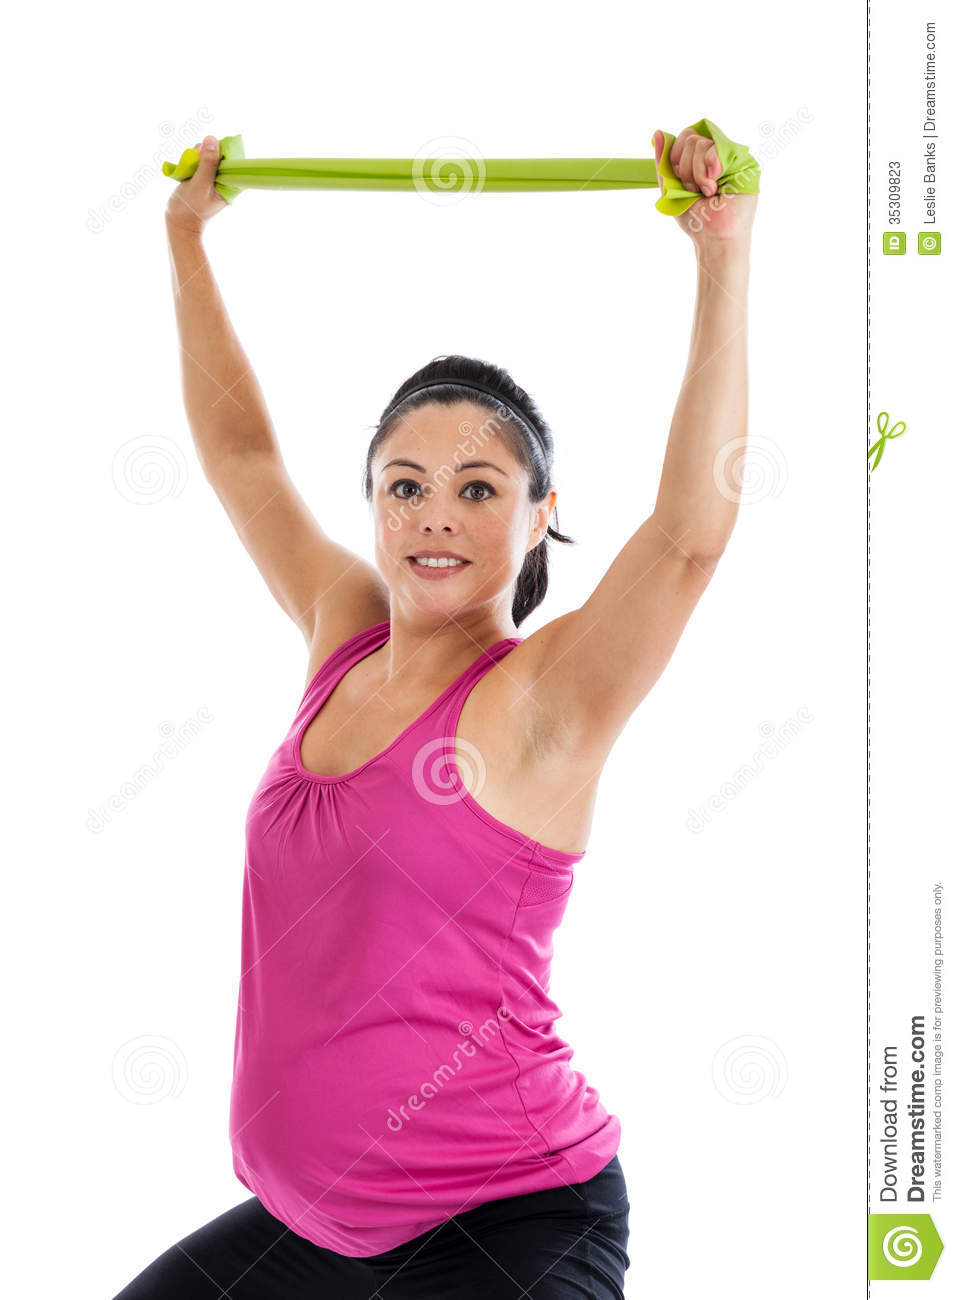 Pregnant Woman Exercising With Resistance Band Stock ...